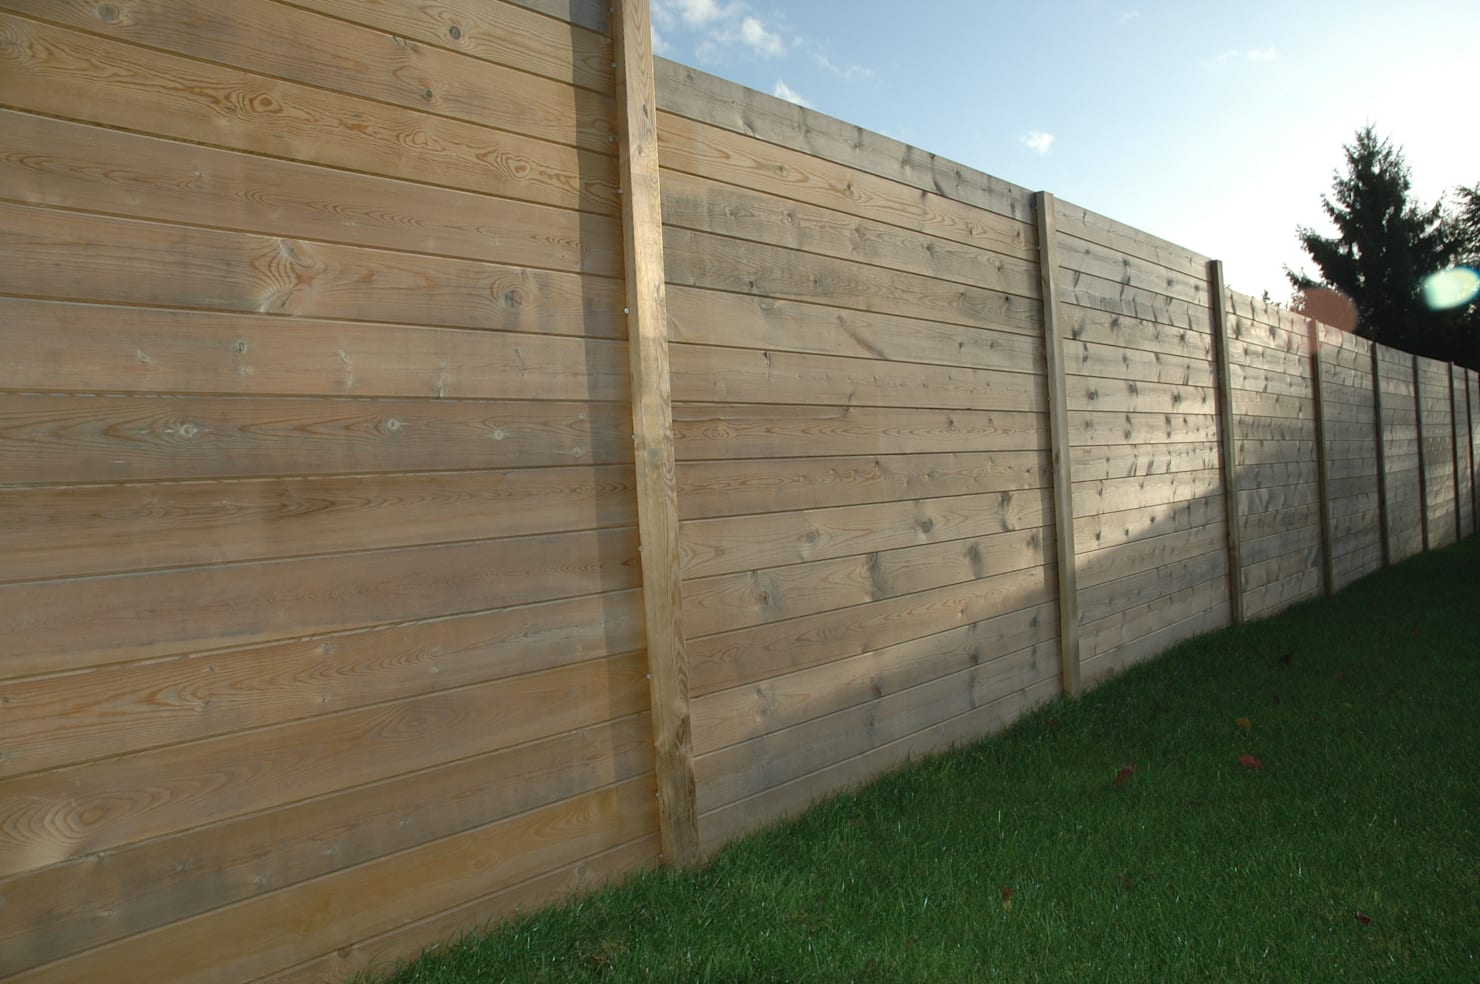 15 garden fences your neighbors will be desperate to copy!